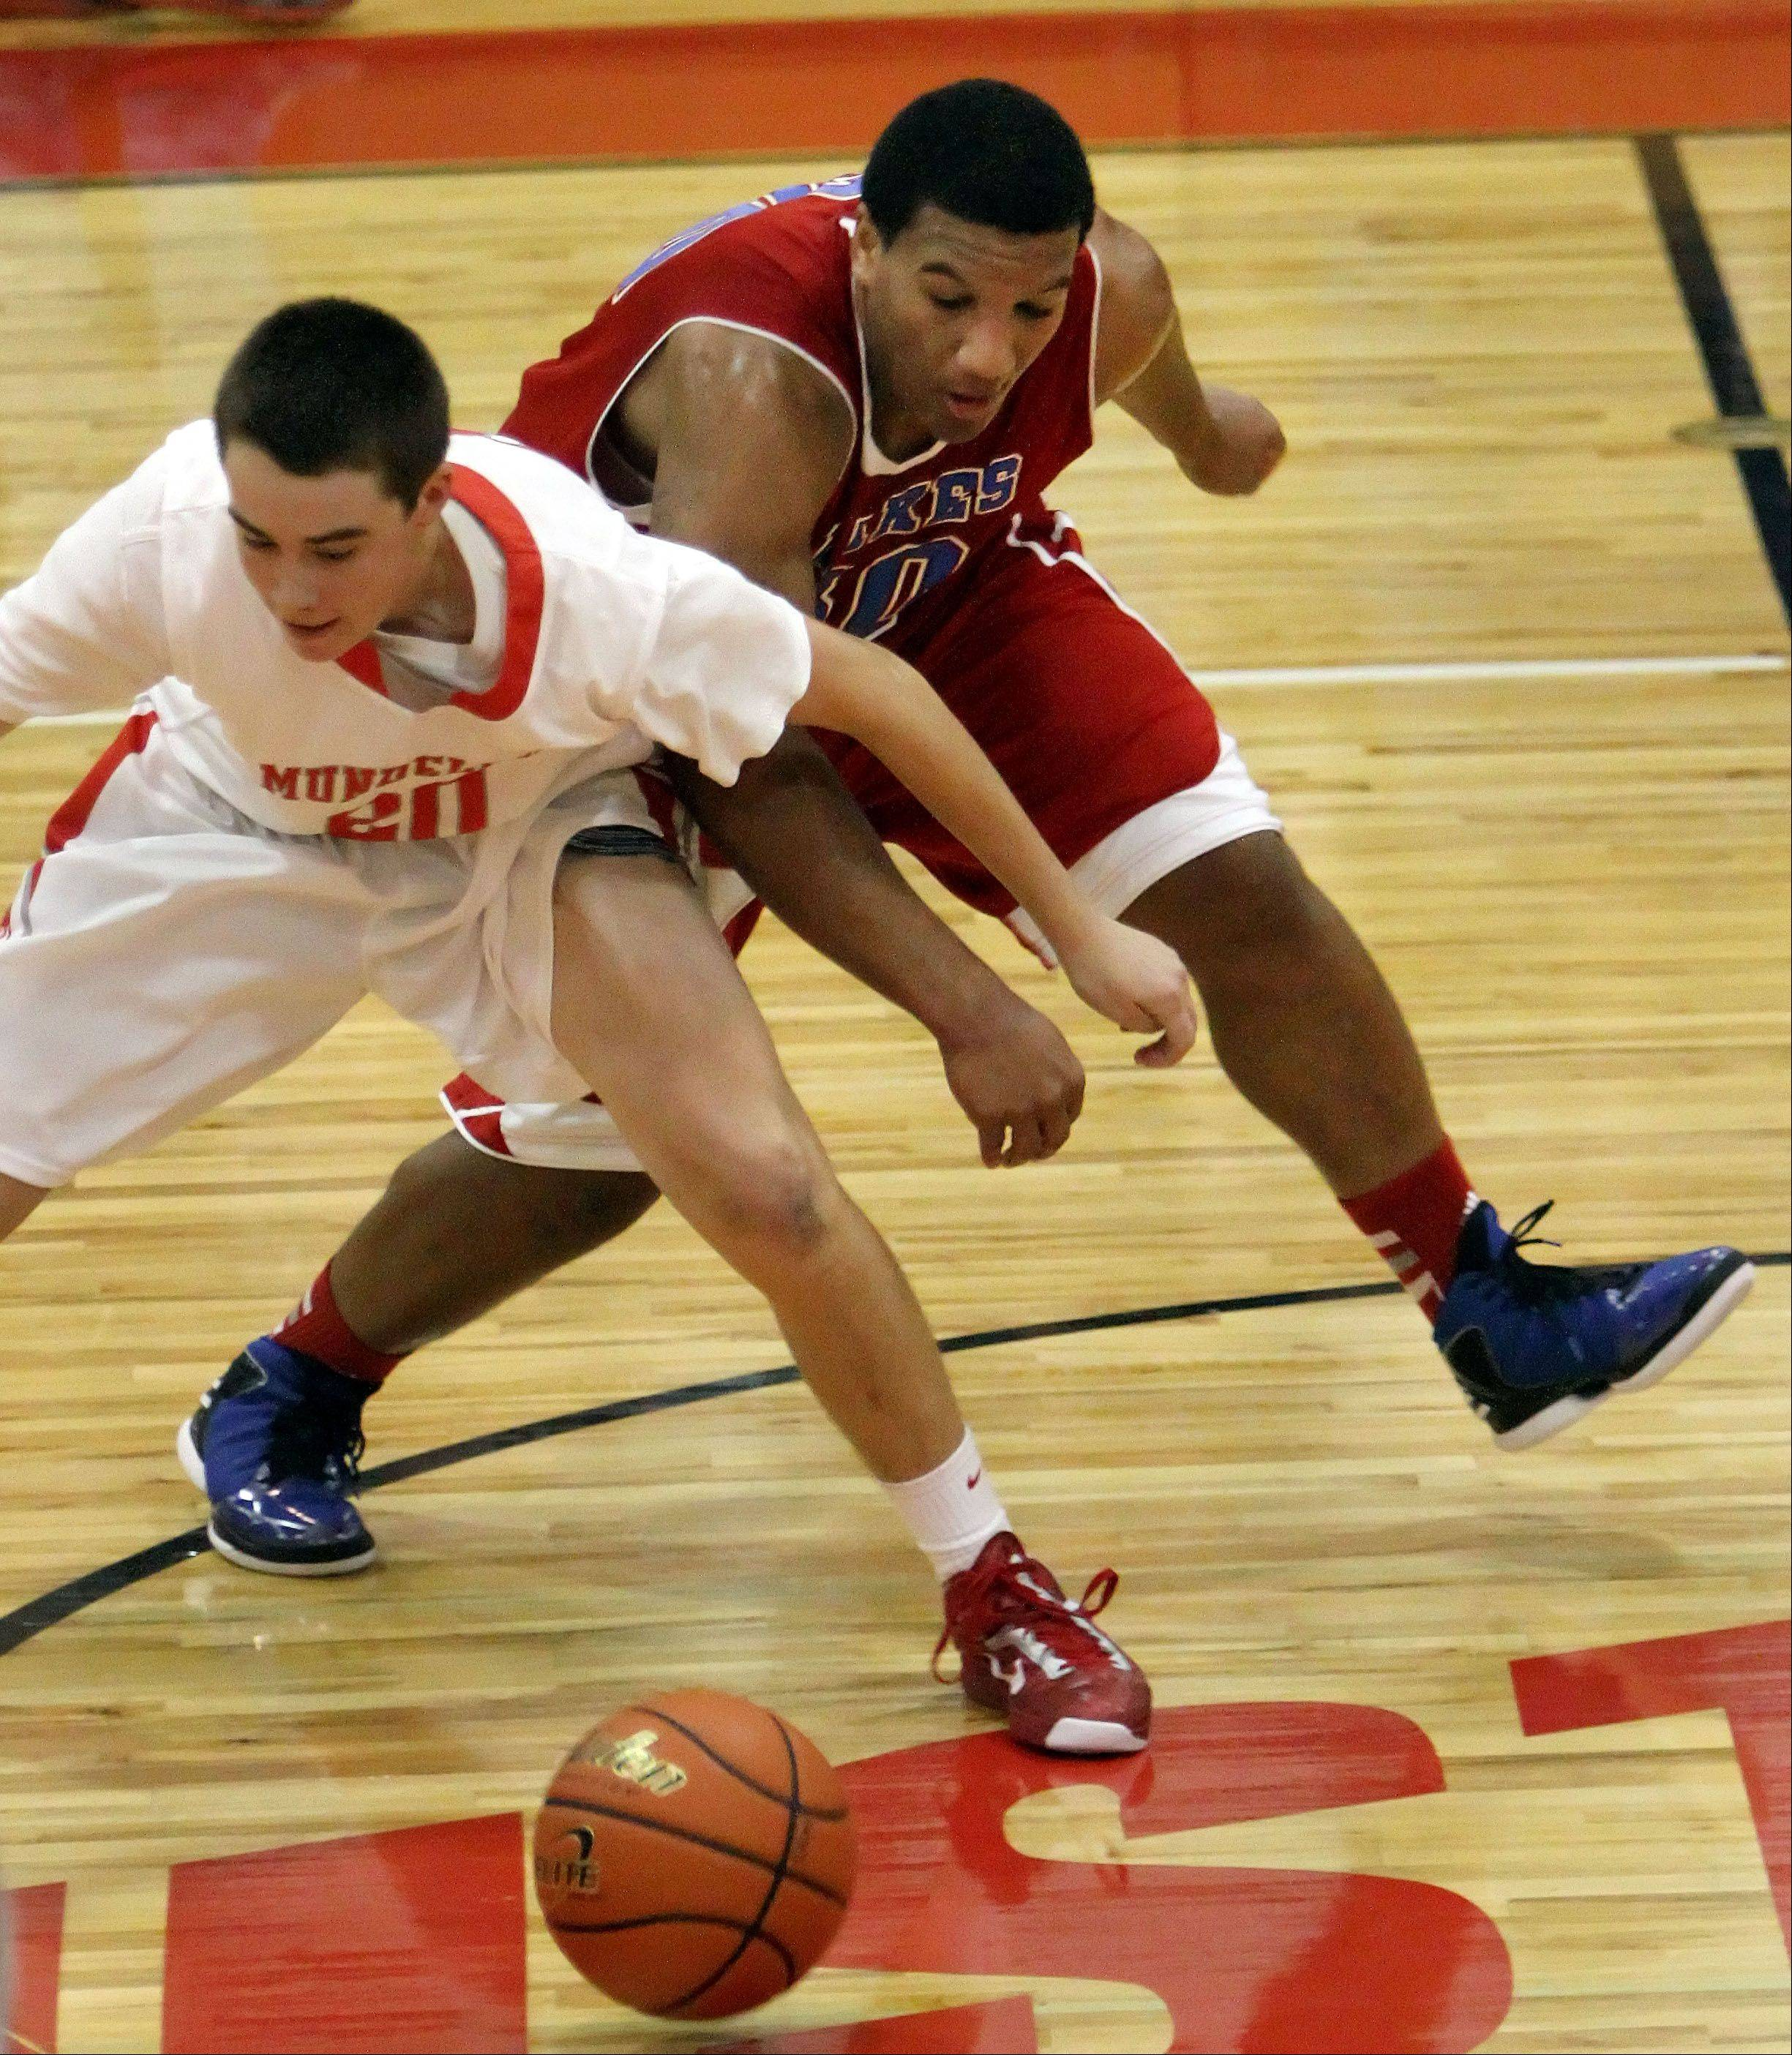 Mundelein's Derek Parola and Lakes' Direll Clark battle for a loose ball Tuesday night at Mundelein.